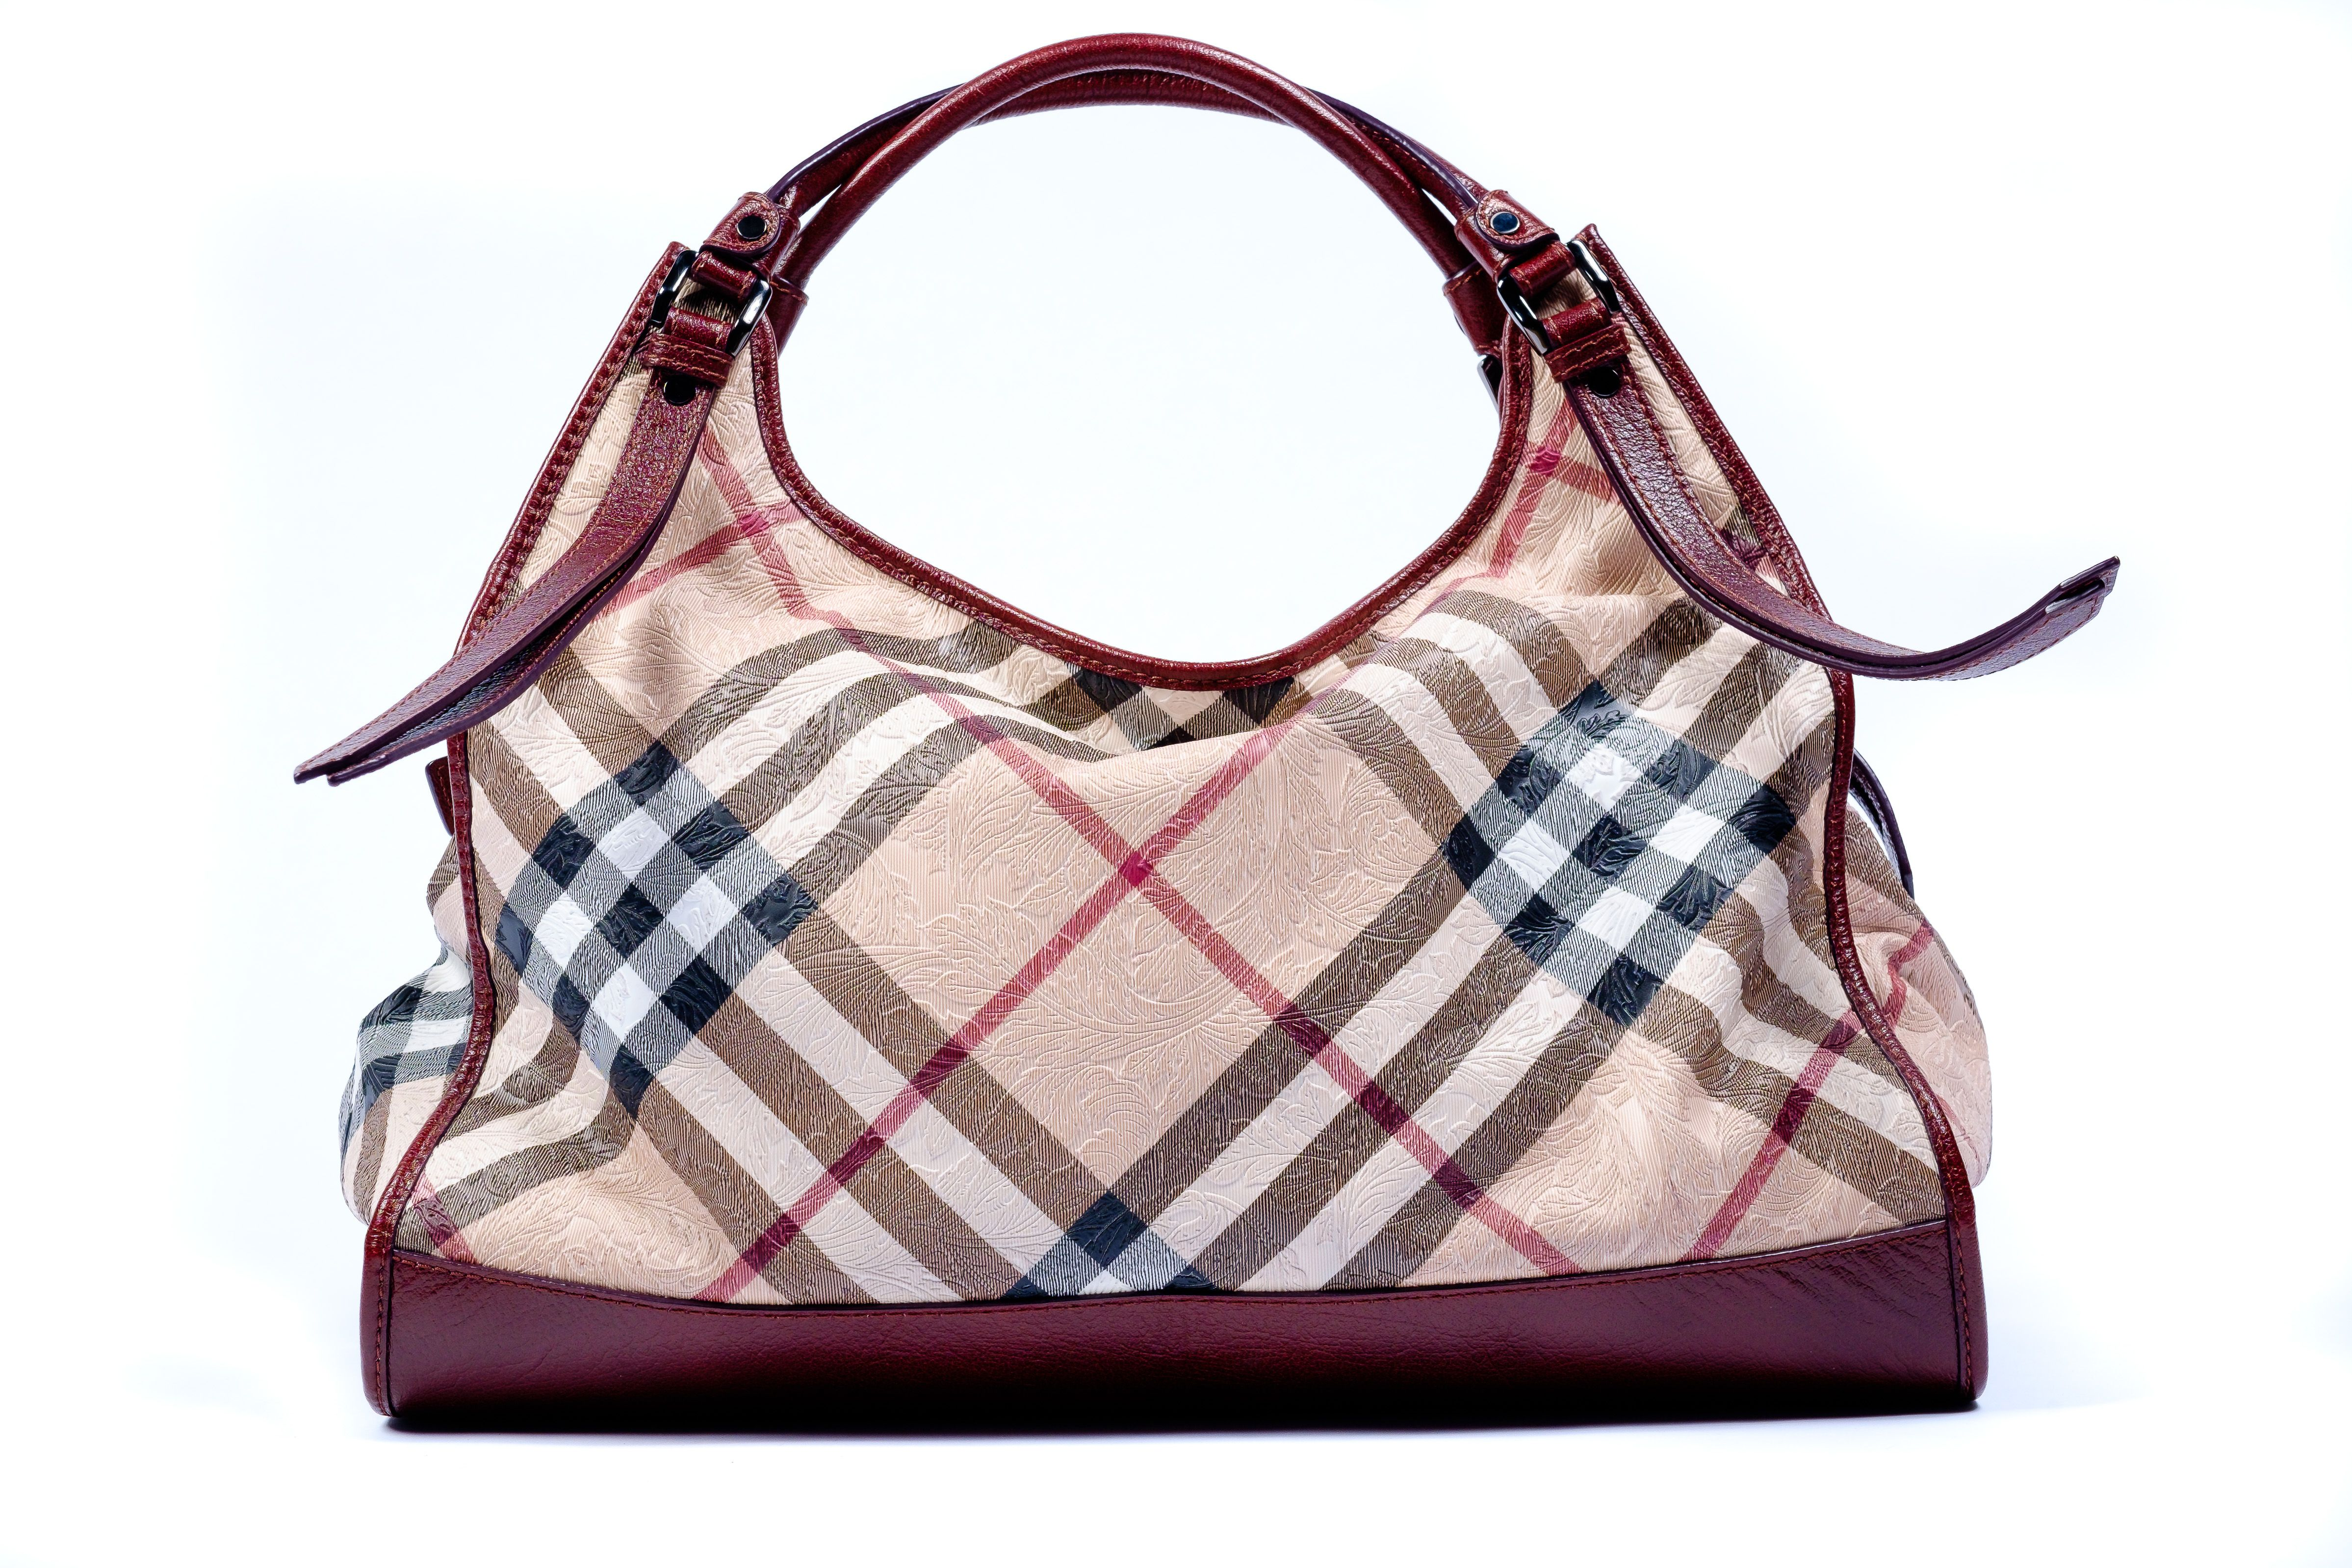 Large Embossed Burberry Handbag 1325 95